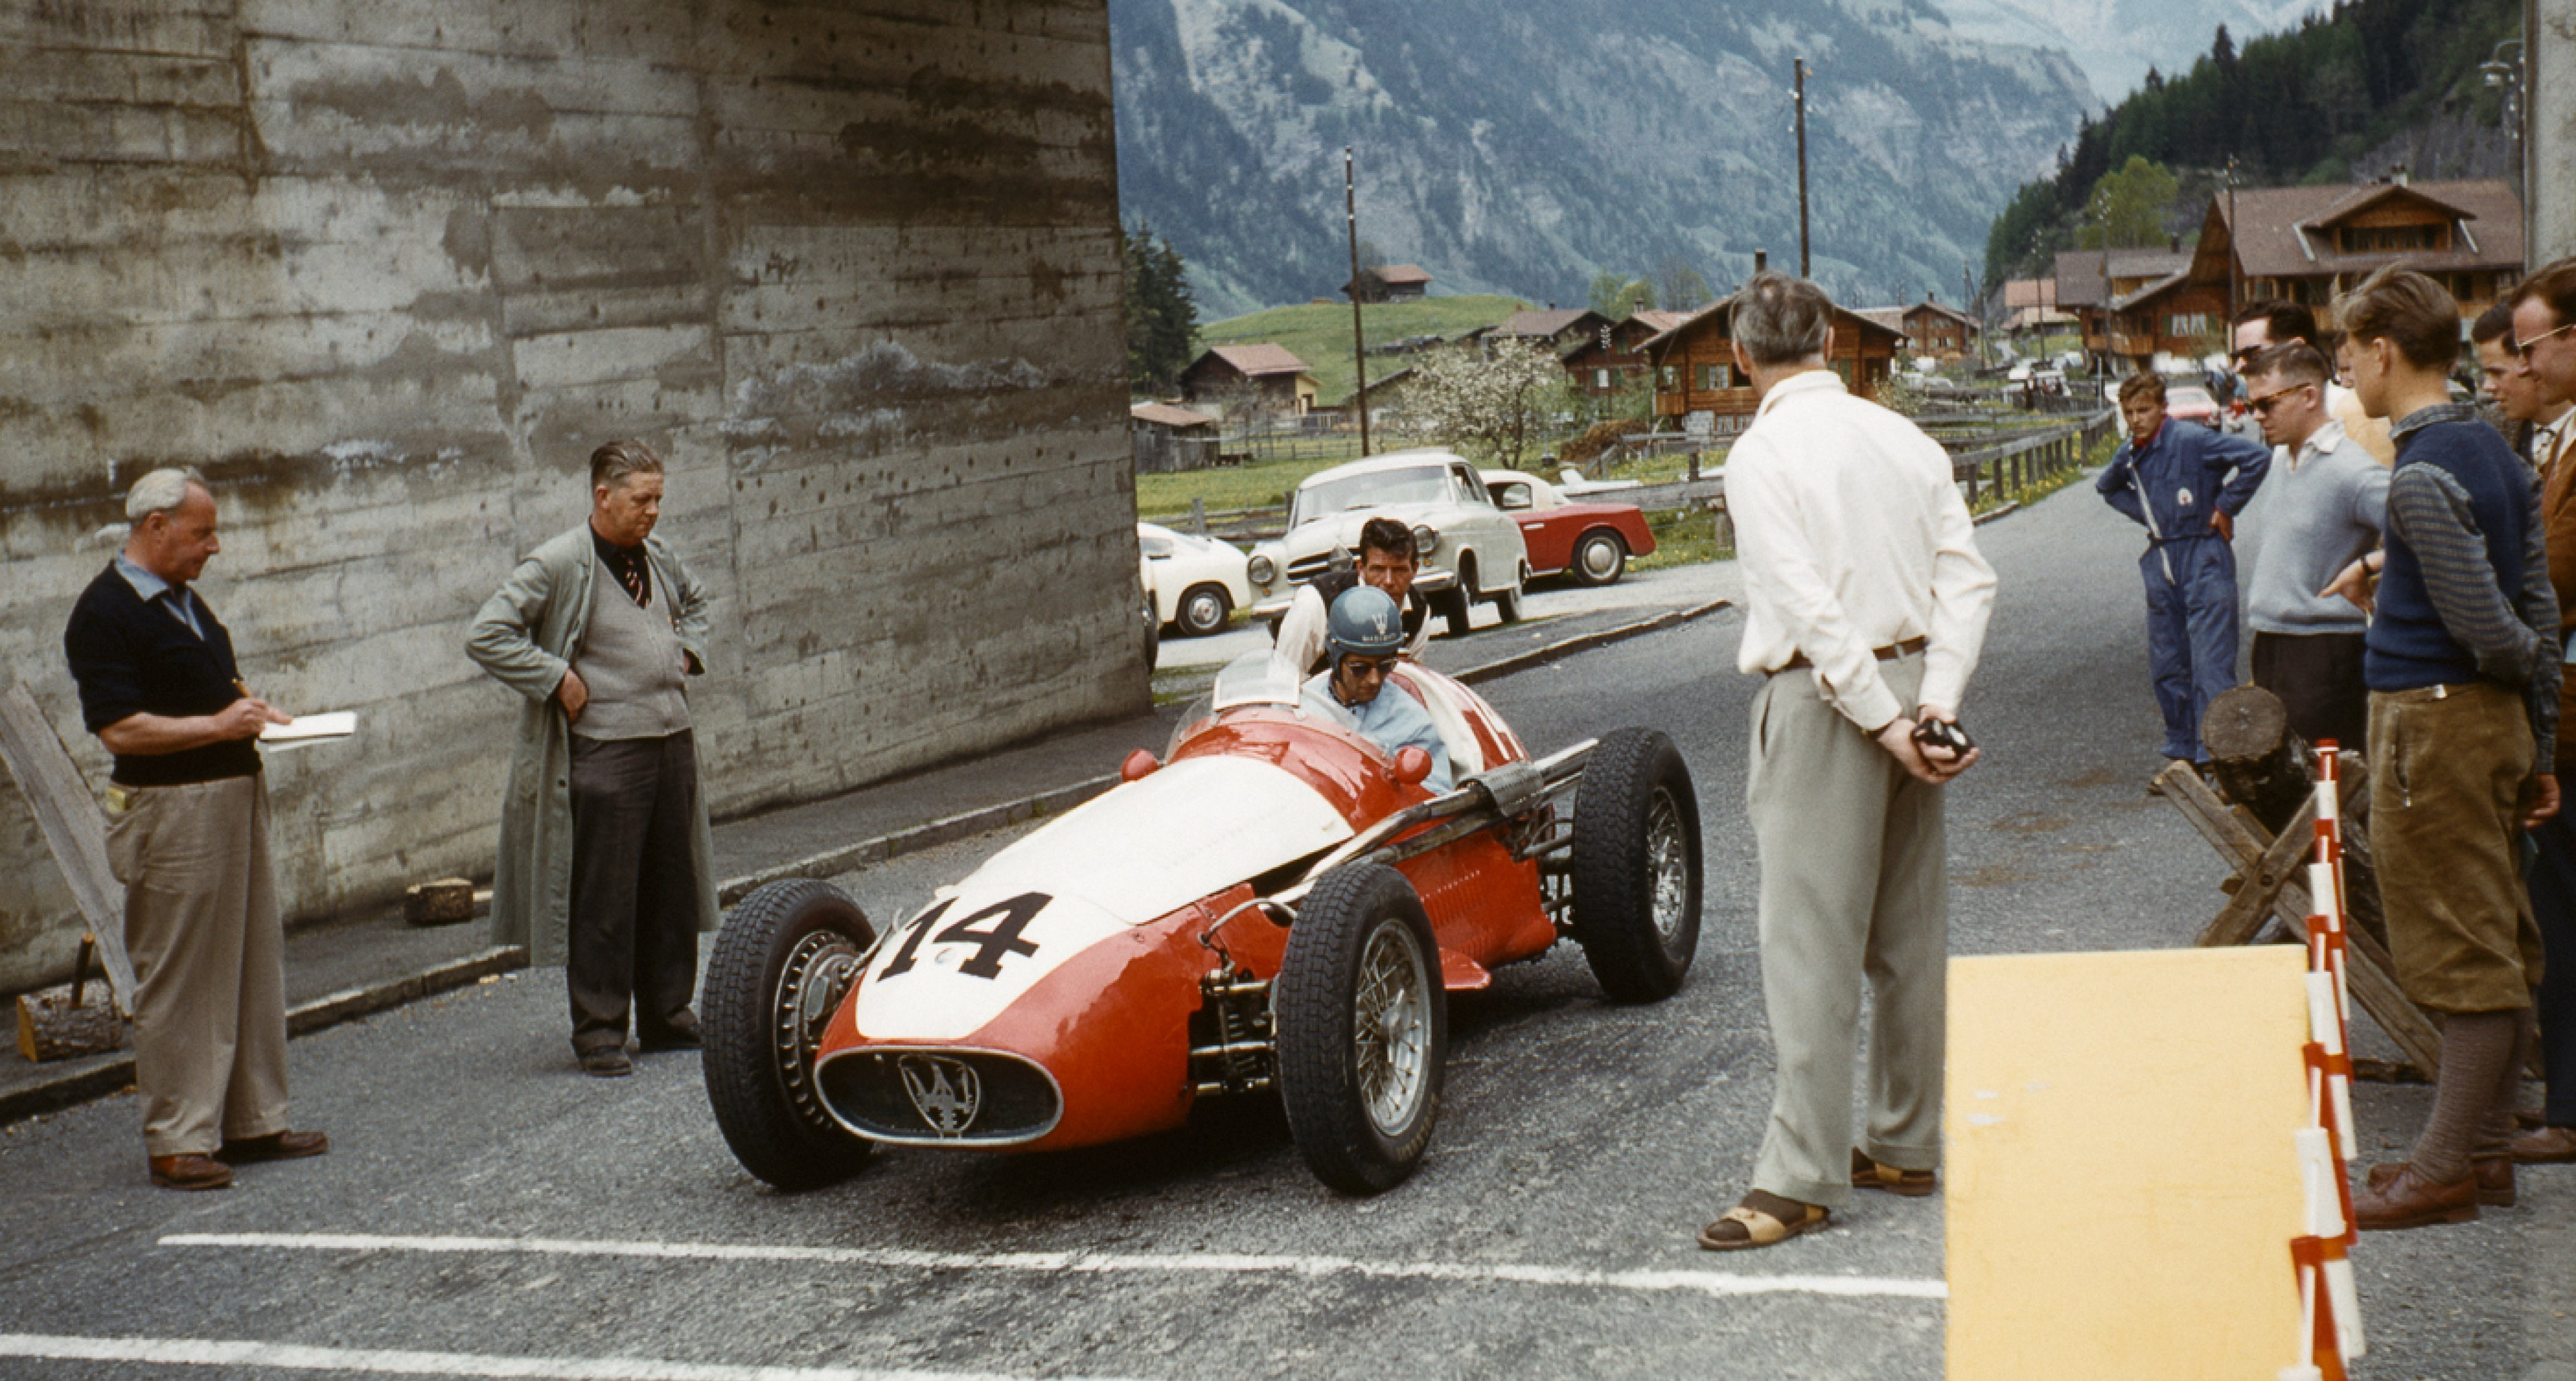 Erwin Sommerhalder in his Maserati A6GCM/250F at the Nationales Bergrennen in Mitholz-Kandersteg, 1959.